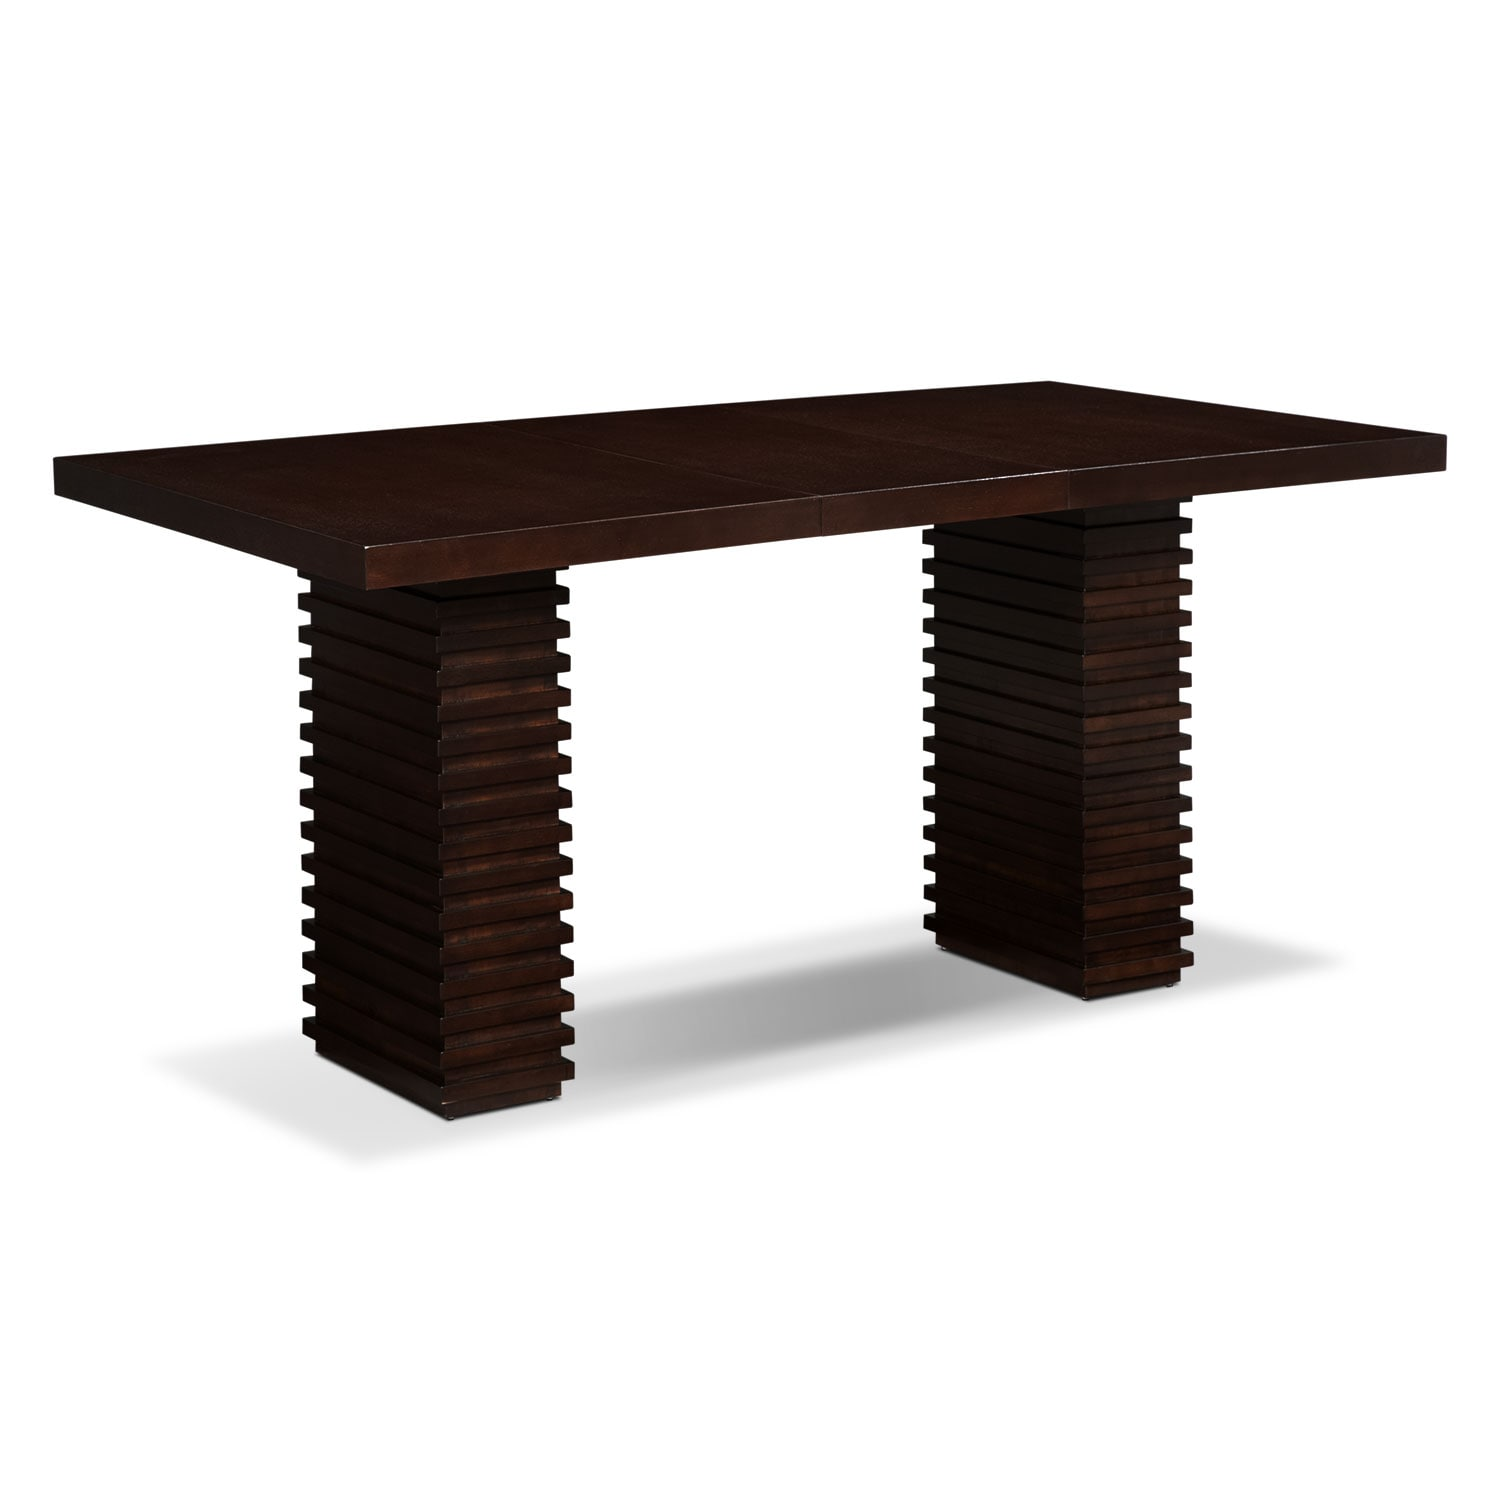 [Paragon Counter-Height Table]